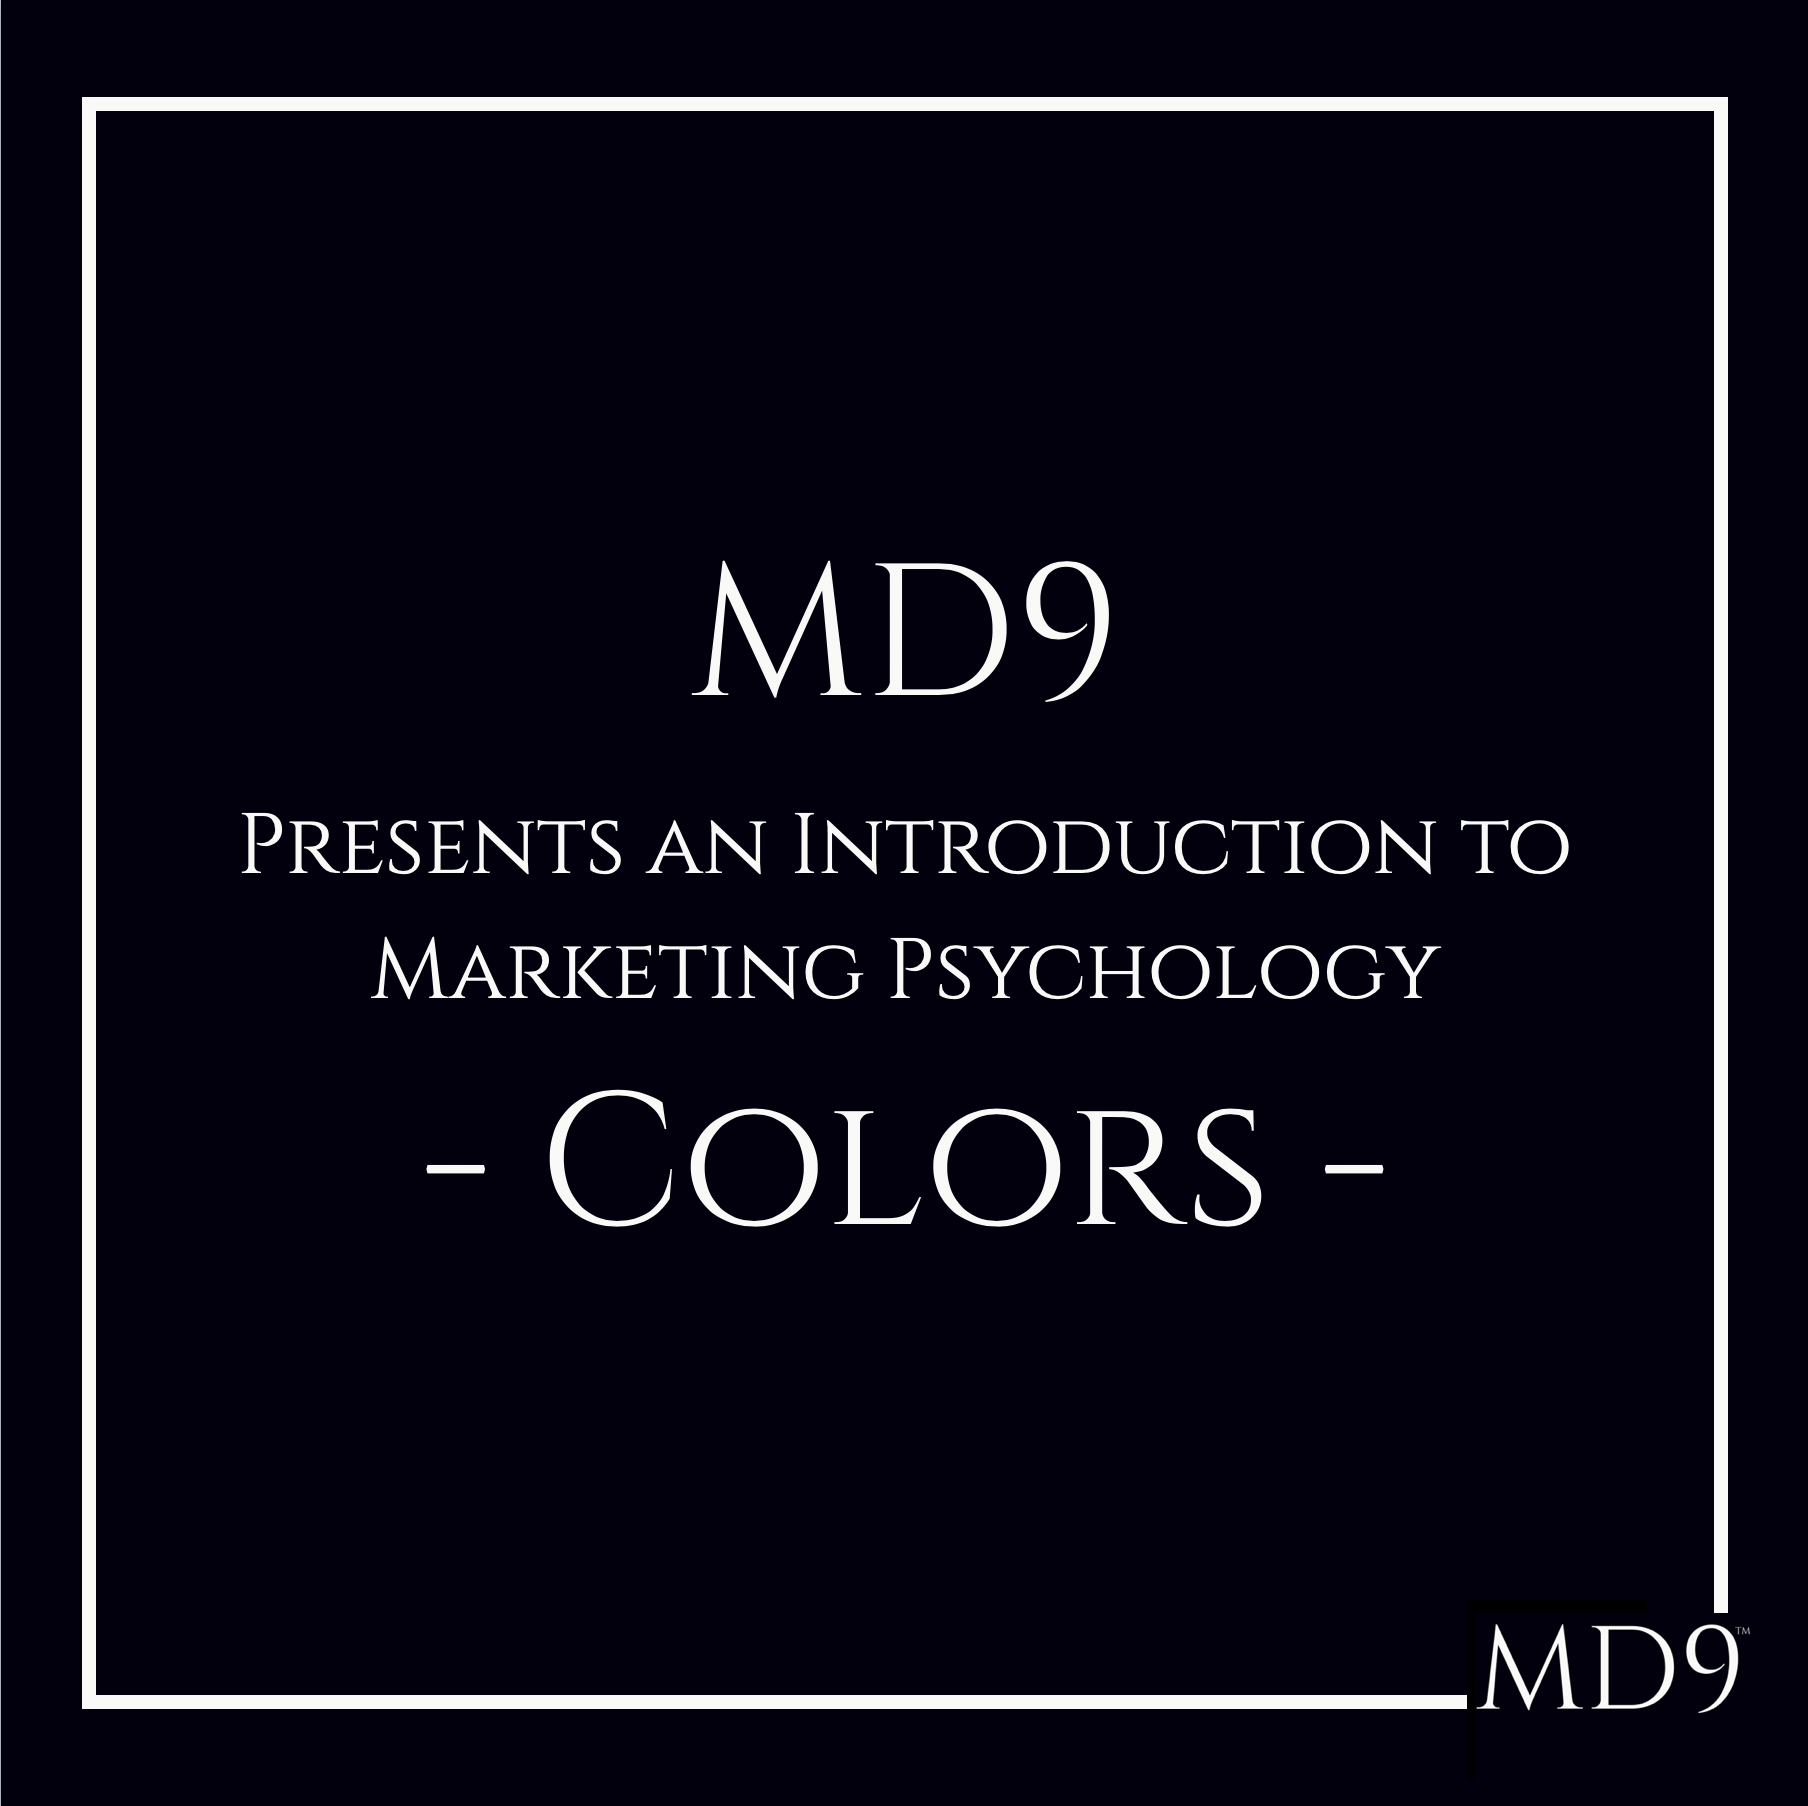 MD9's Introduction To Marketing Psychology – Colors